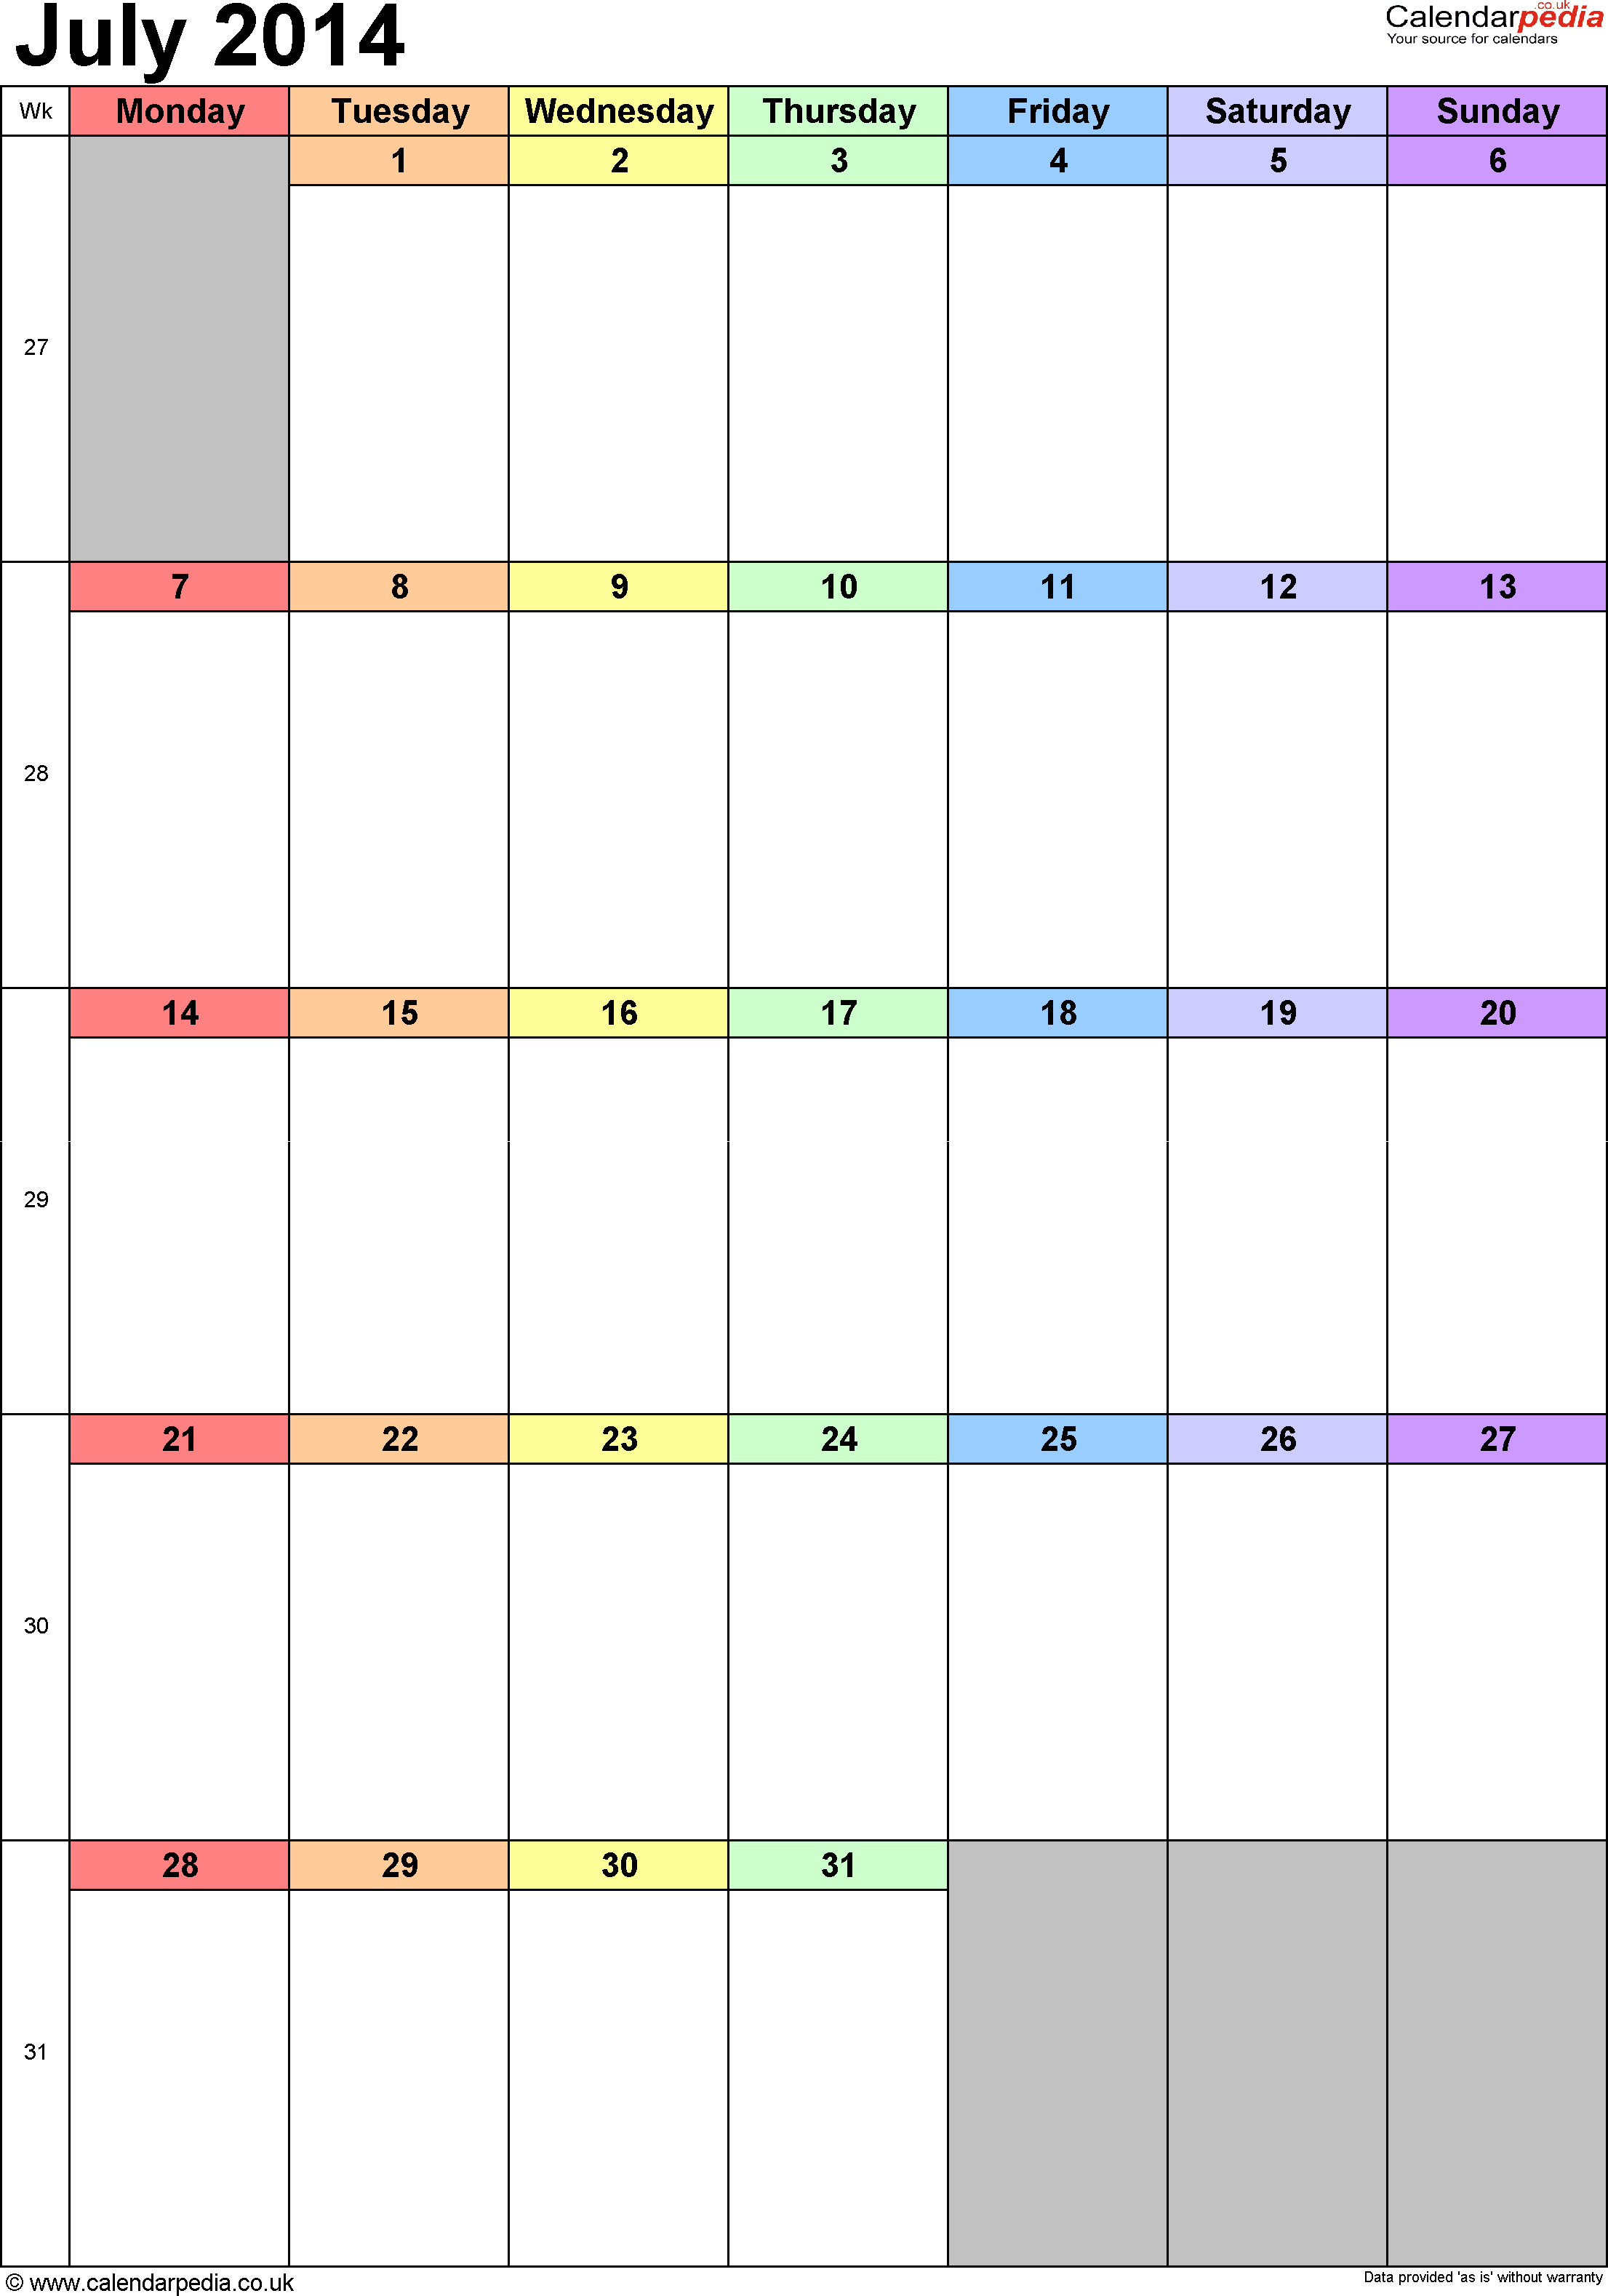 Calendar July 2014 portrait orientation, 1 page, with UK bank holidays and week numbers